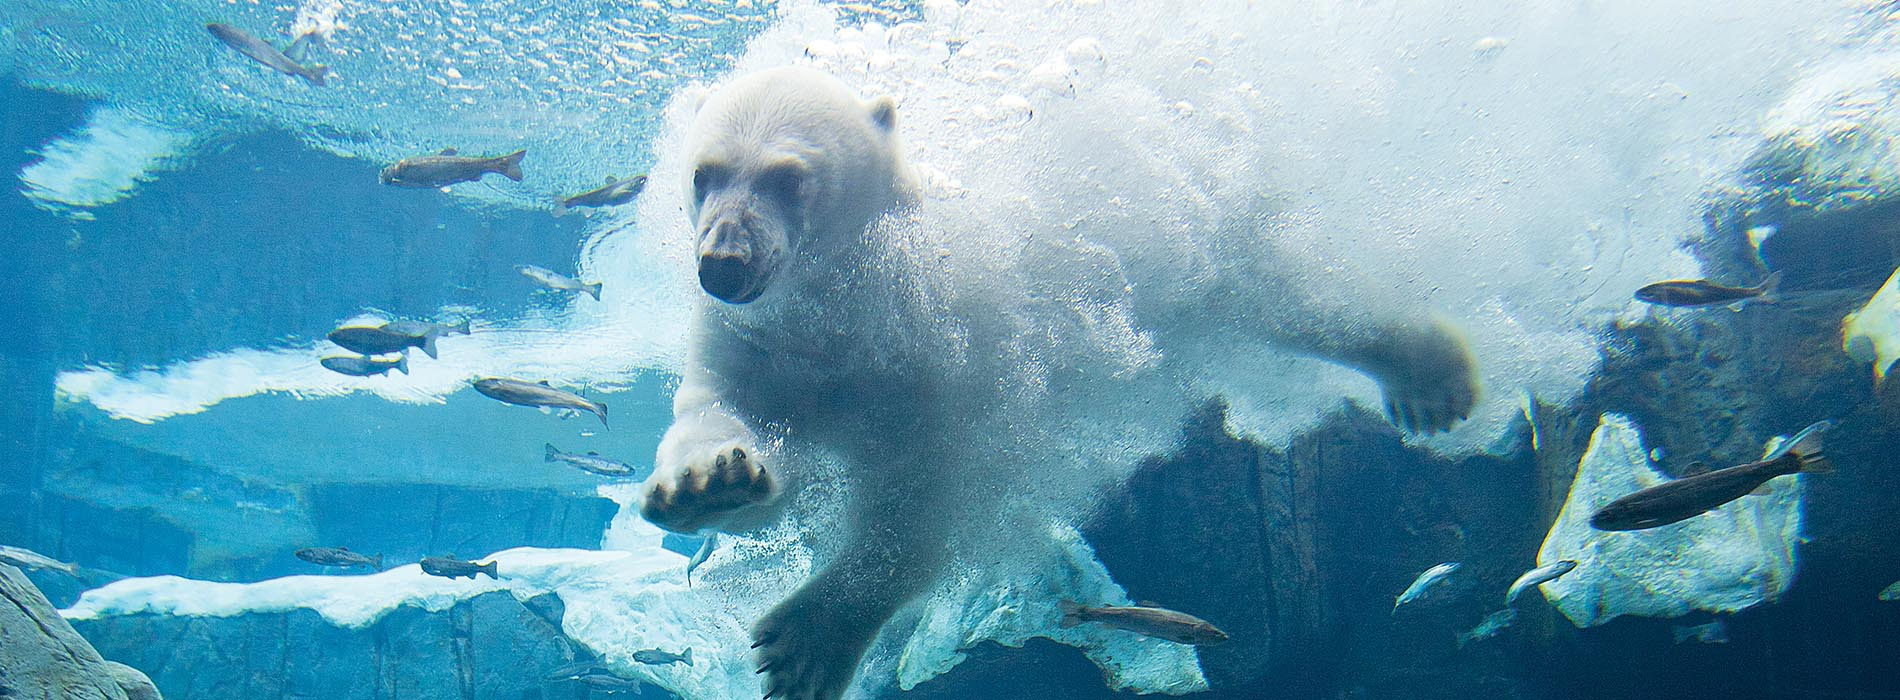 A polar bear diving into water